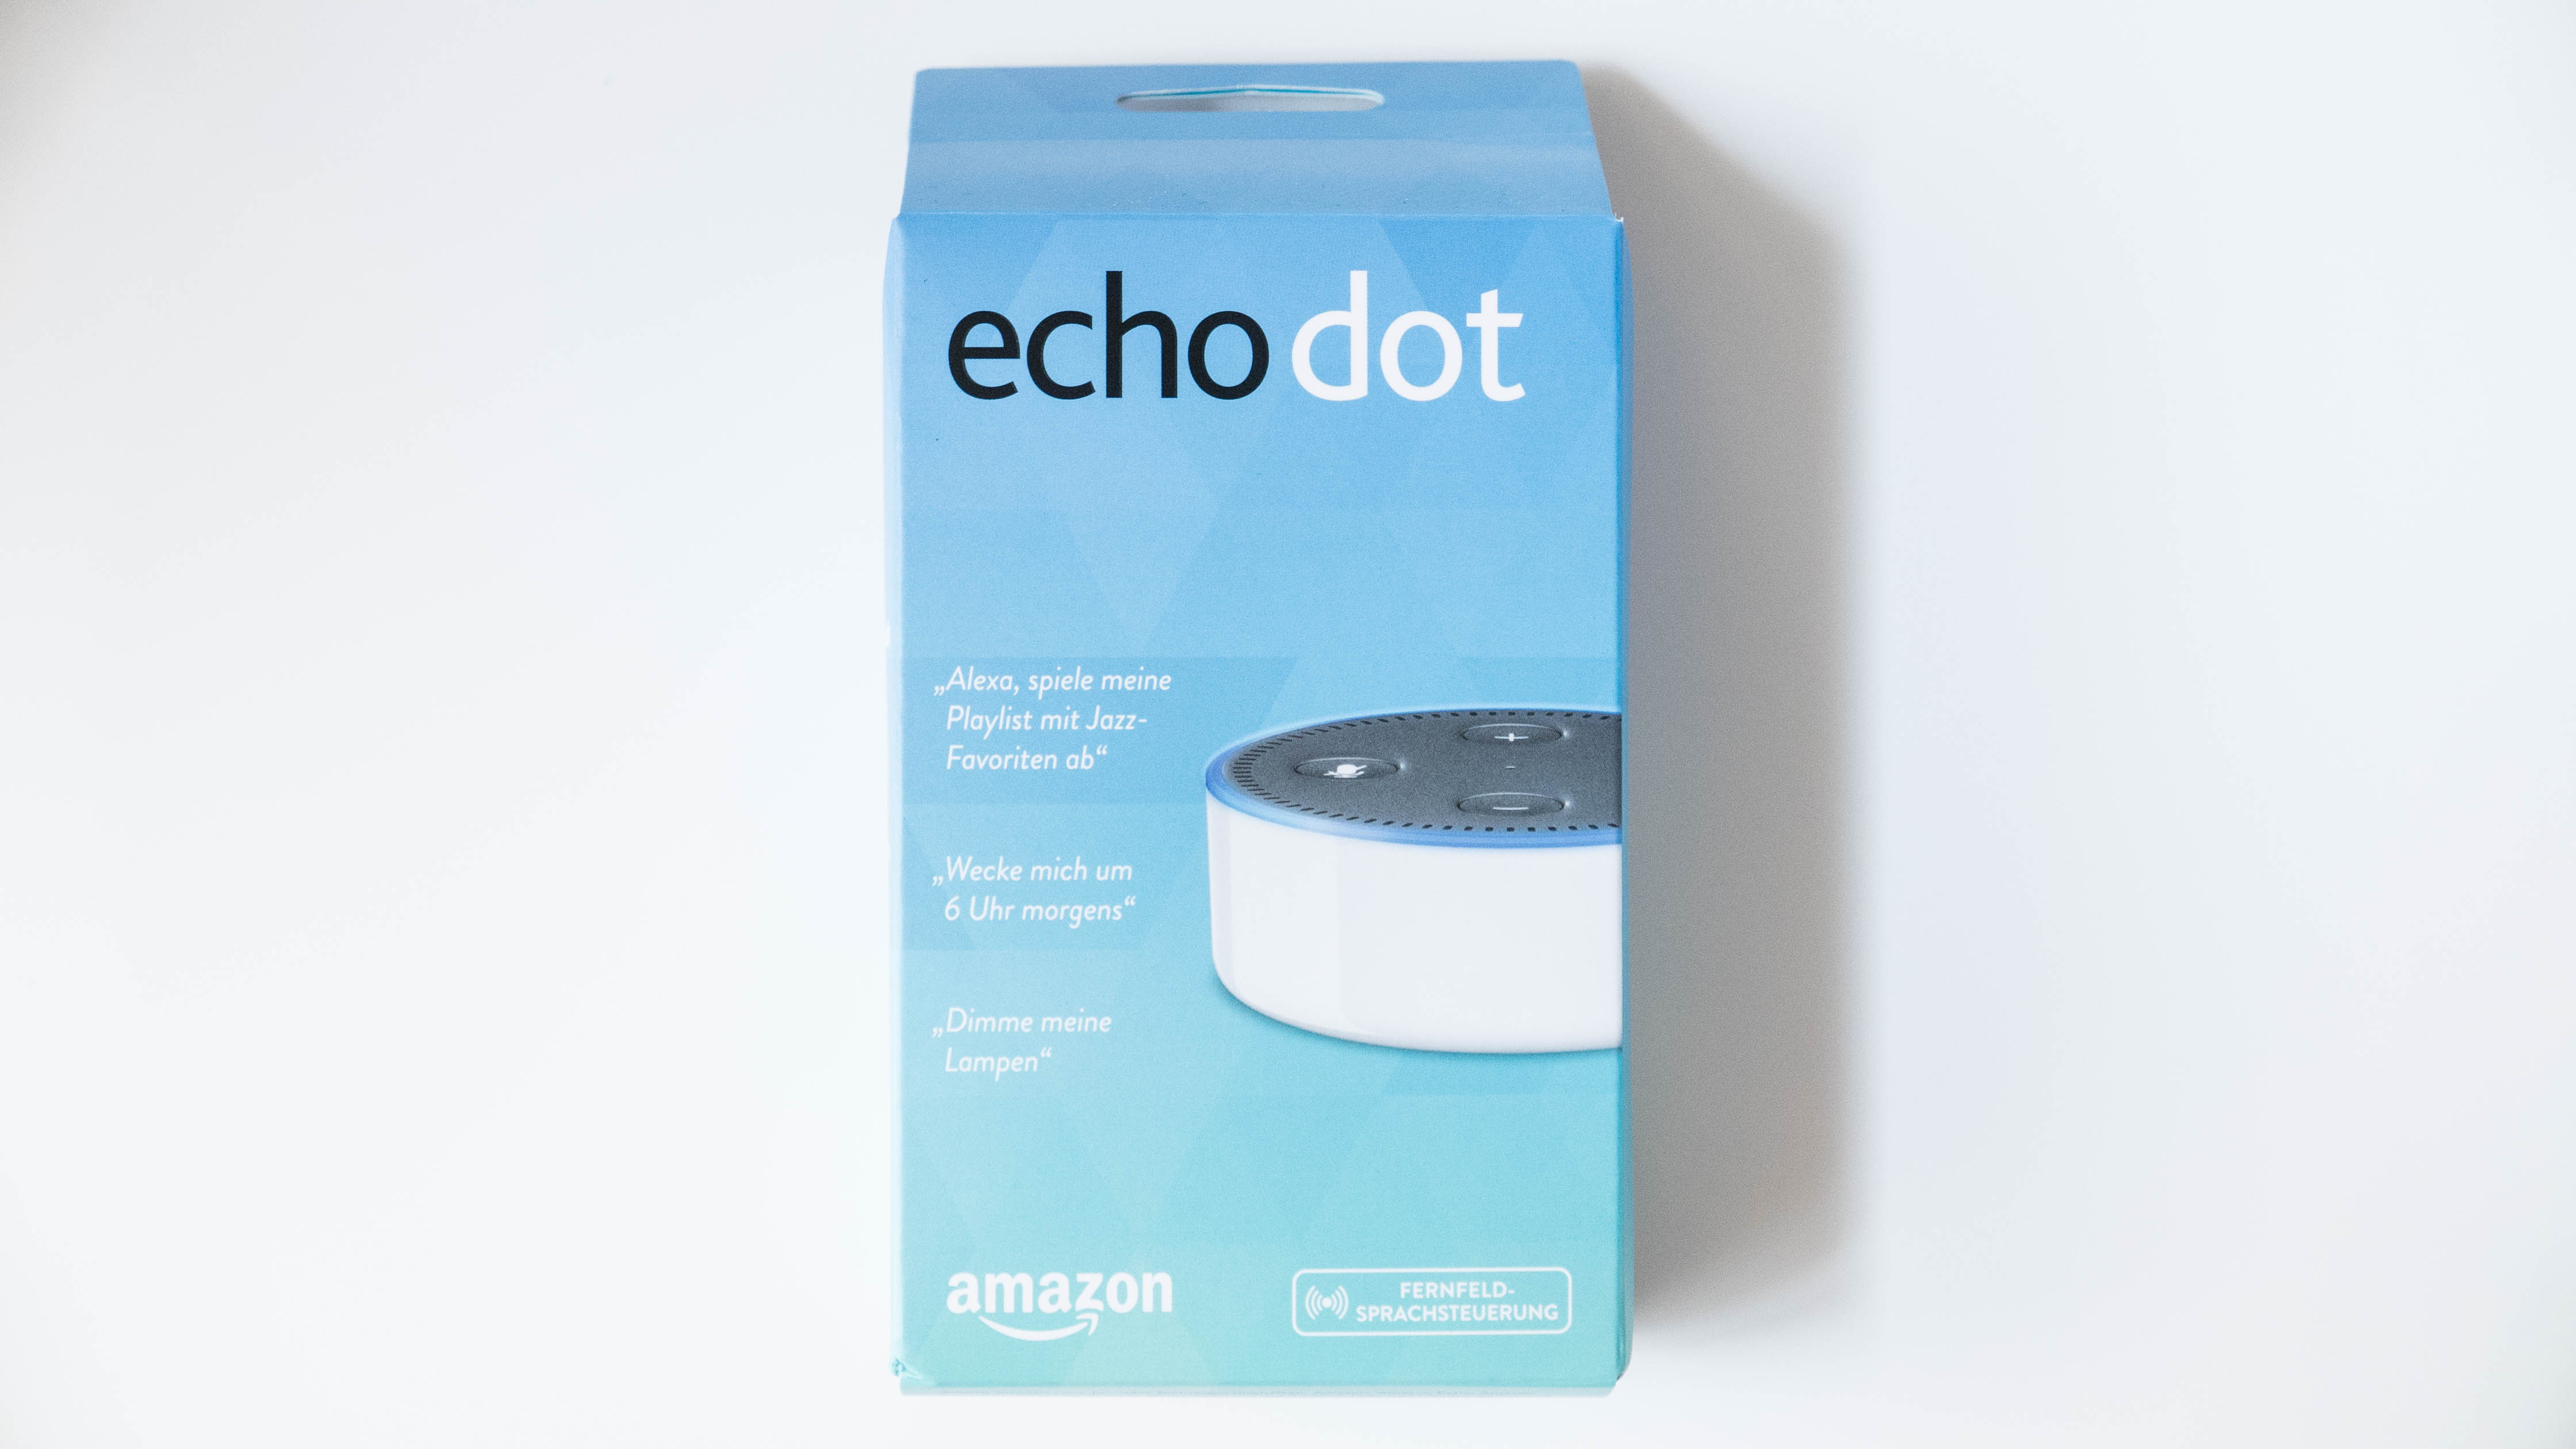 amazon echo dot der 2 generation im test smarthomeassistent. Black Bedroom Furniture Sets. Home Design Ideas